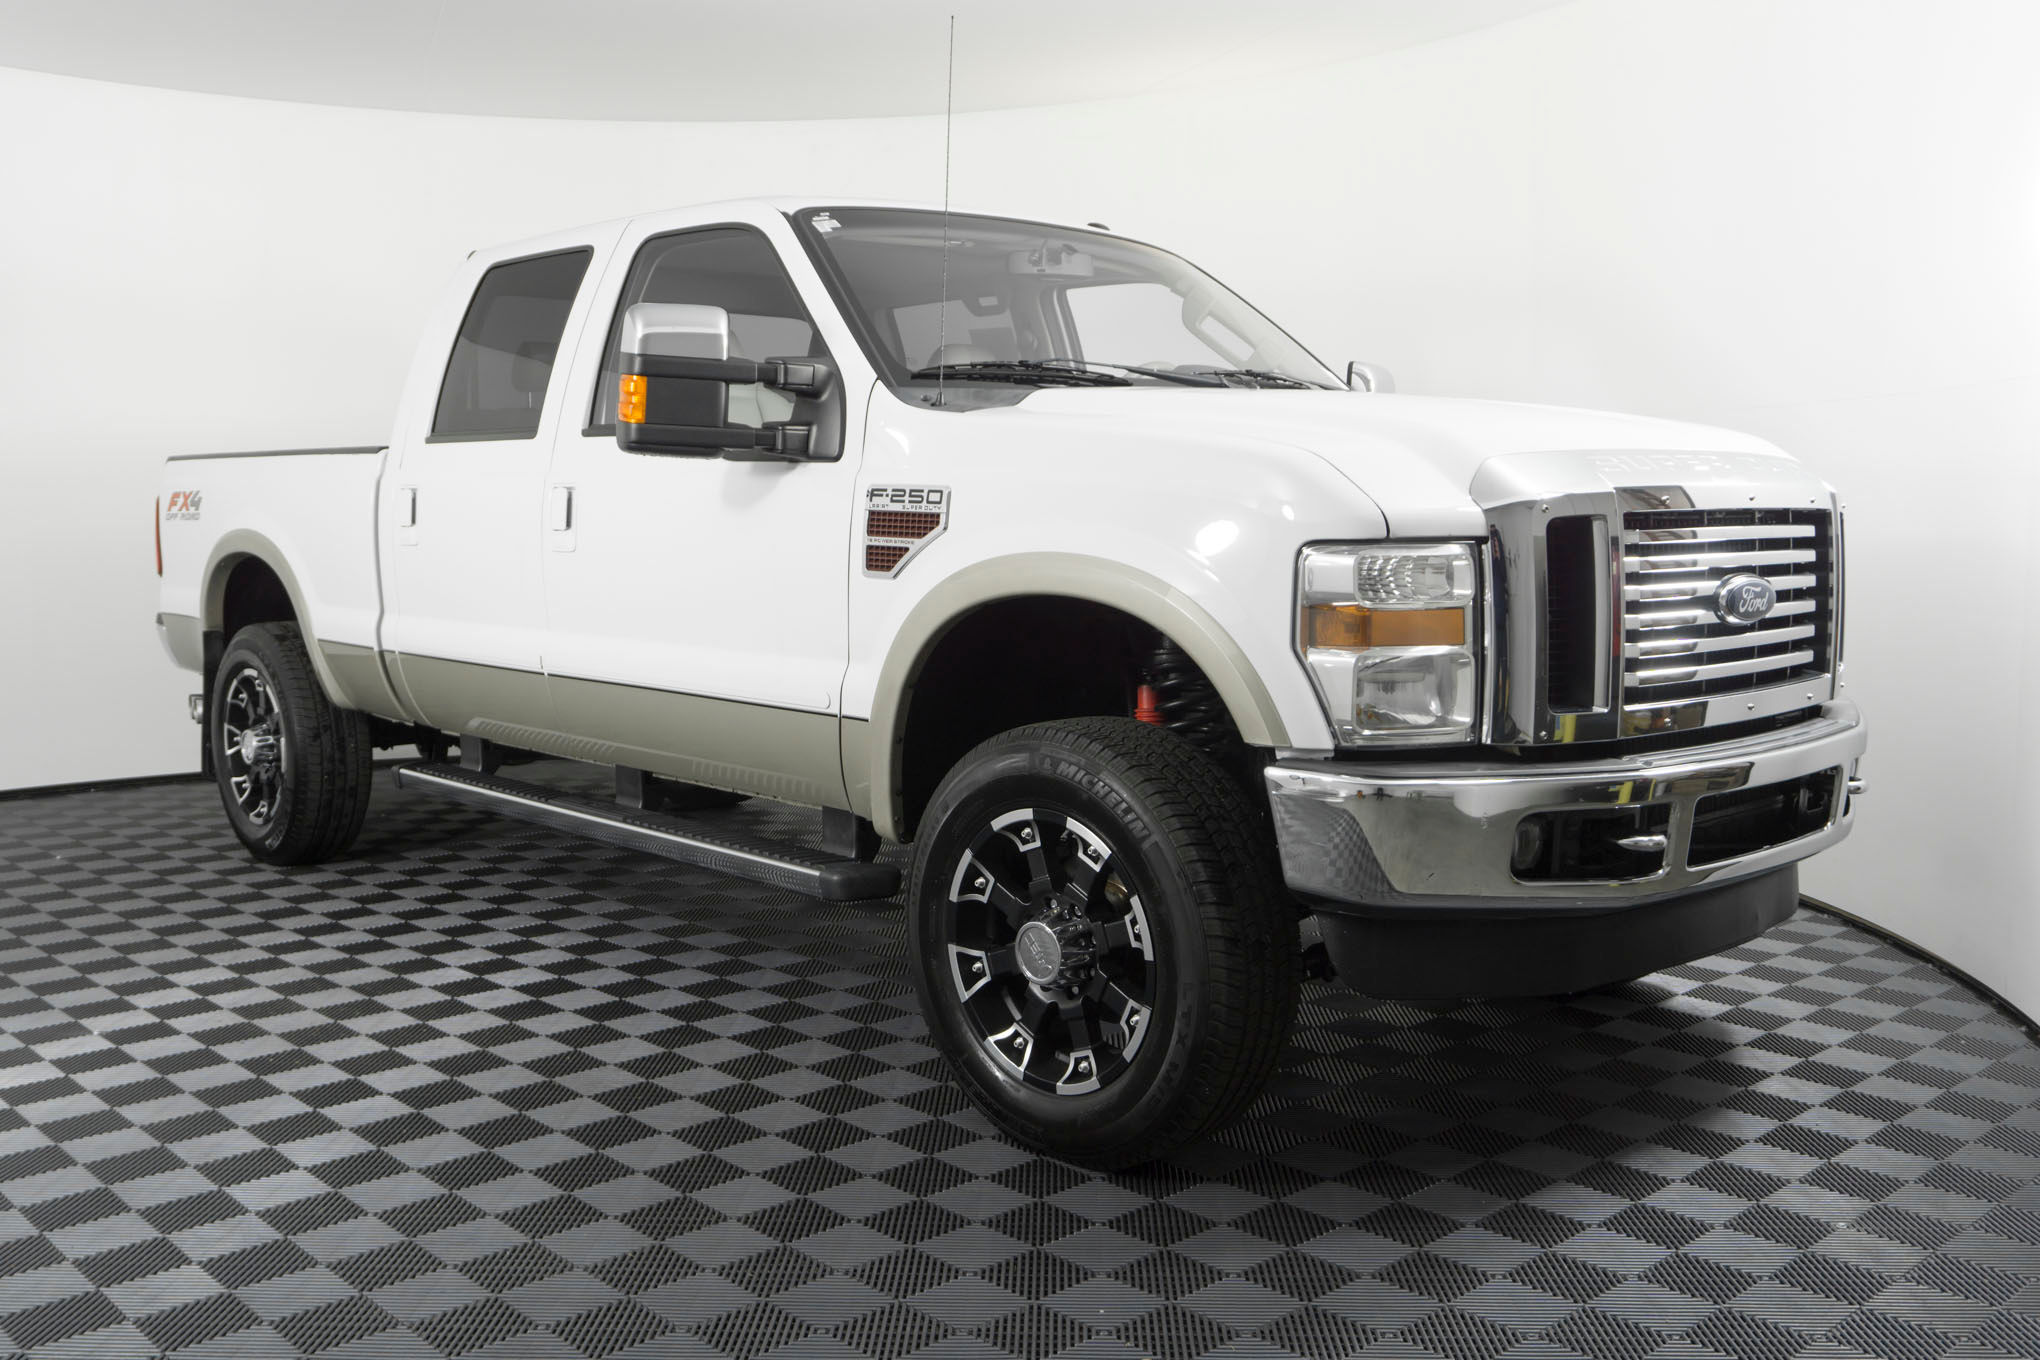 Diesel Trucks Lifted Used For Sale Northwest Ford Super Duty 2010 F 250 Lariat 4x4